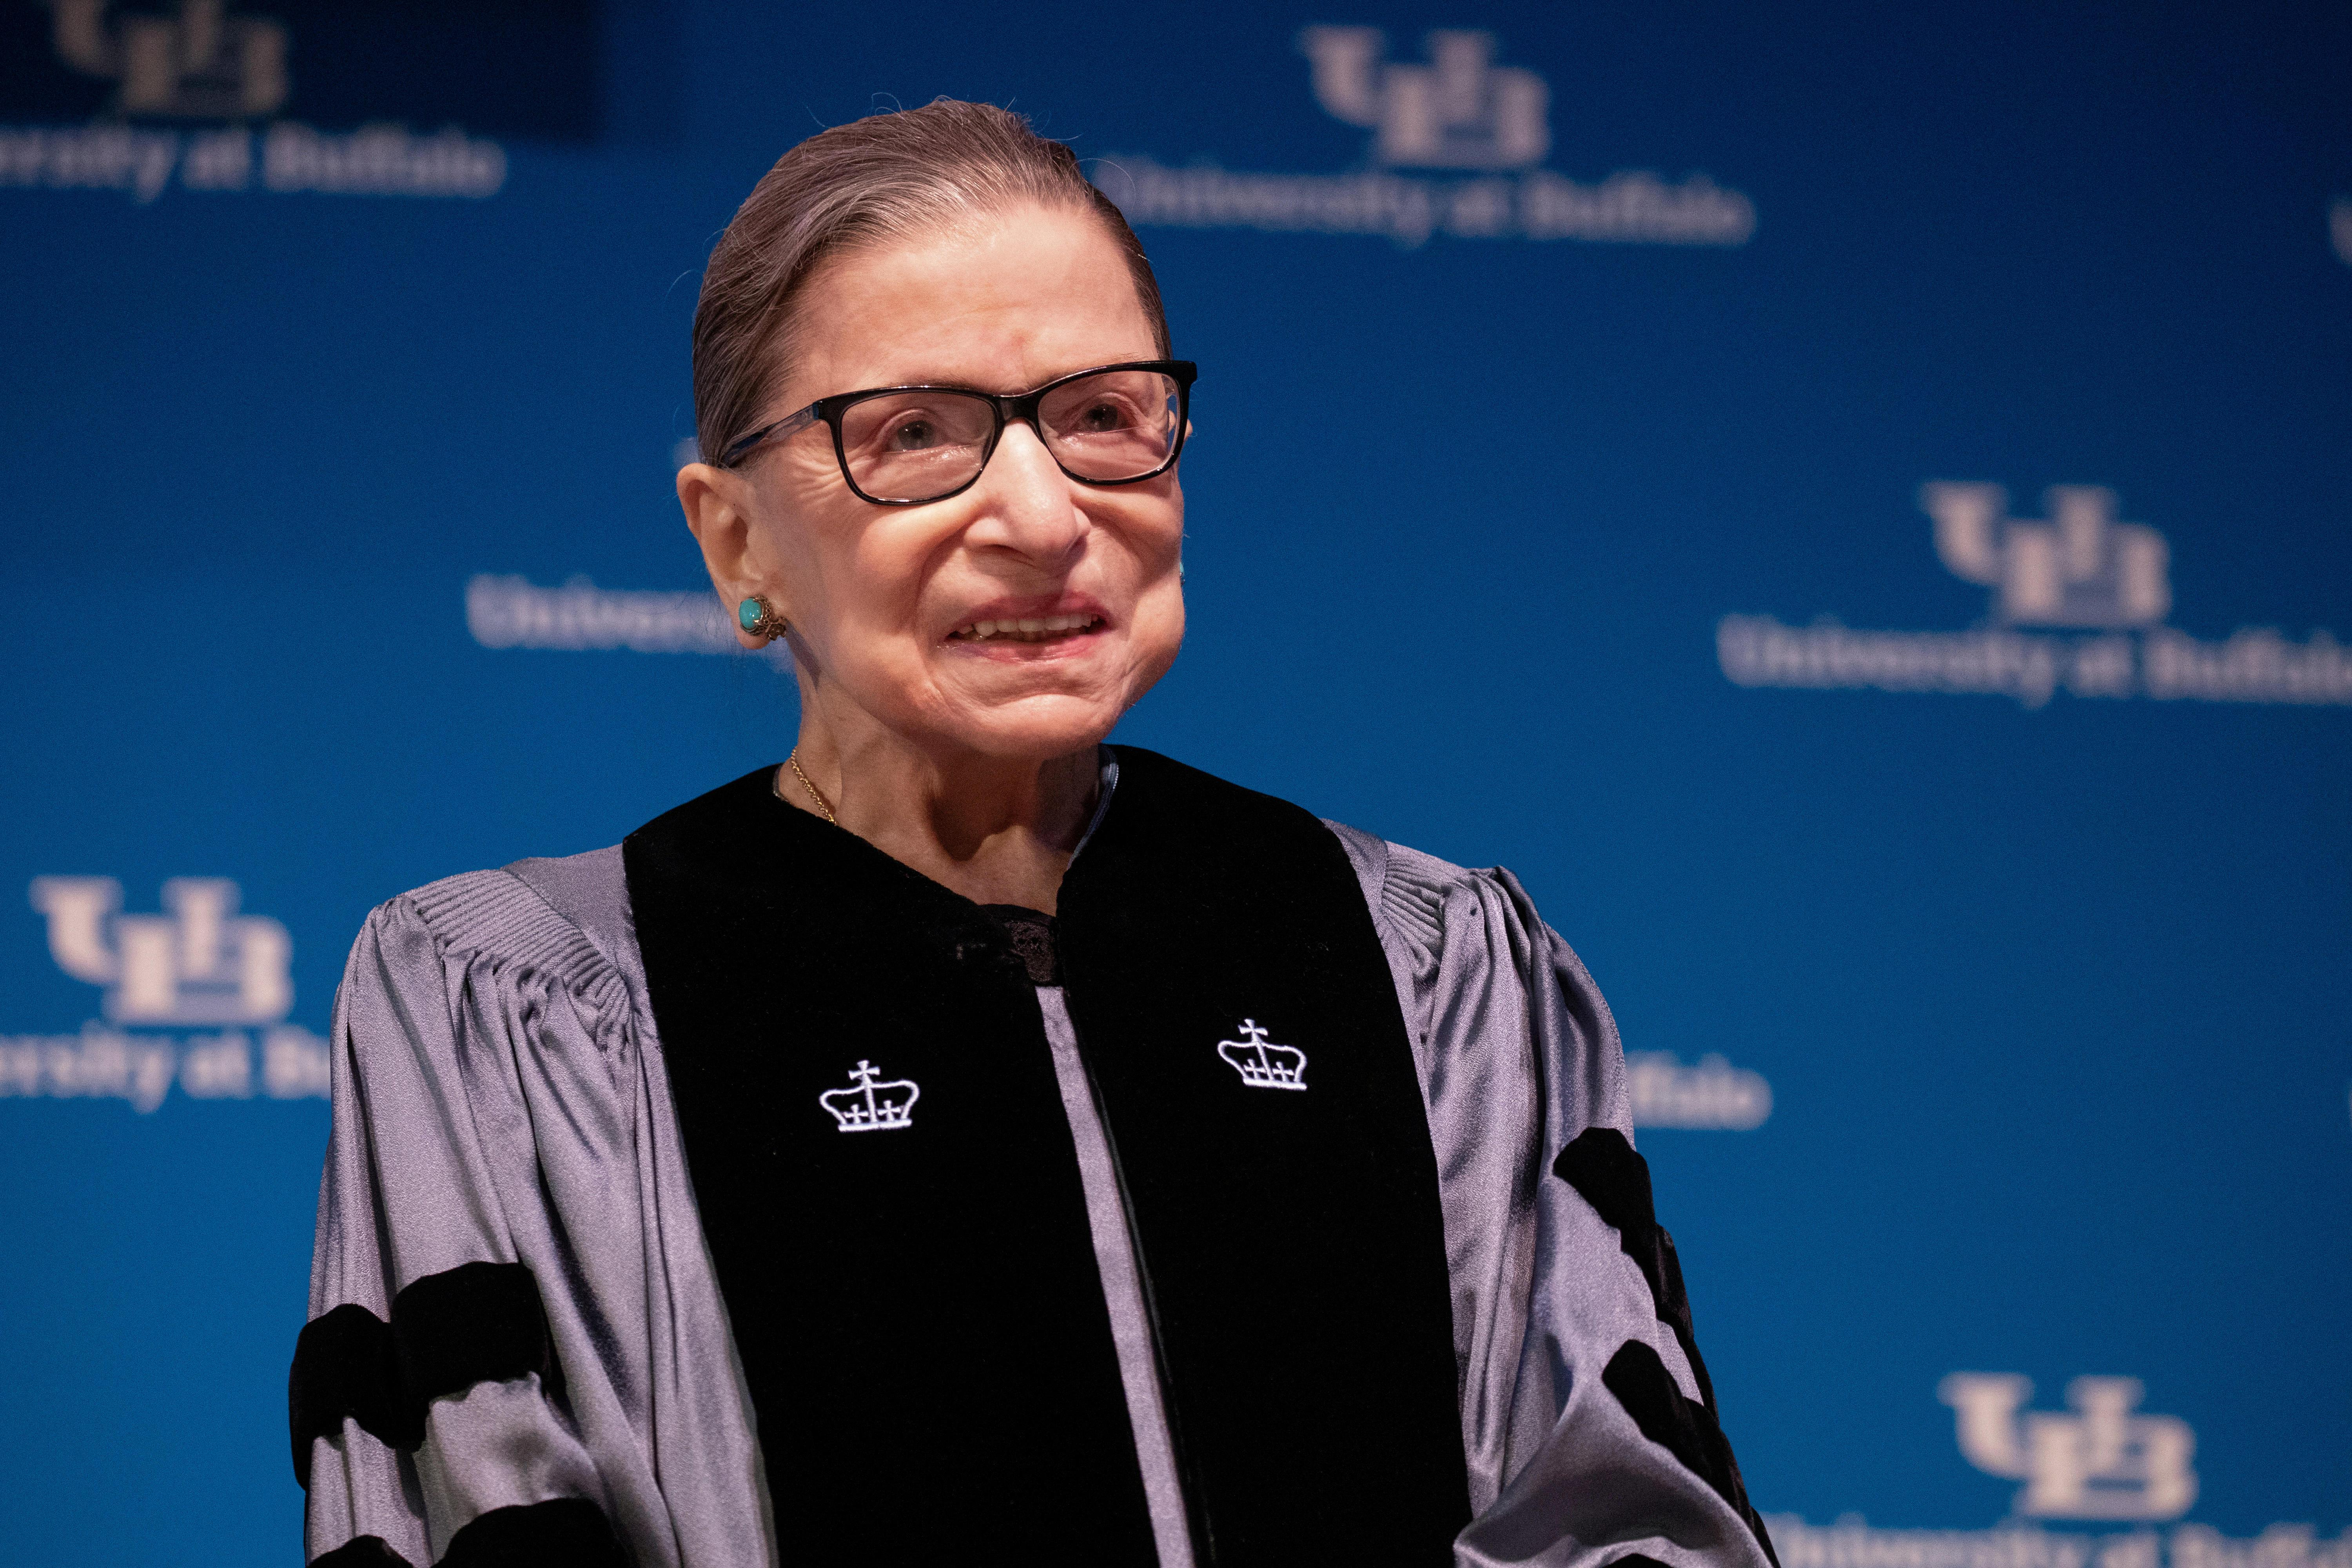 New York landmarks to be lit blue in honor of Ginsburg